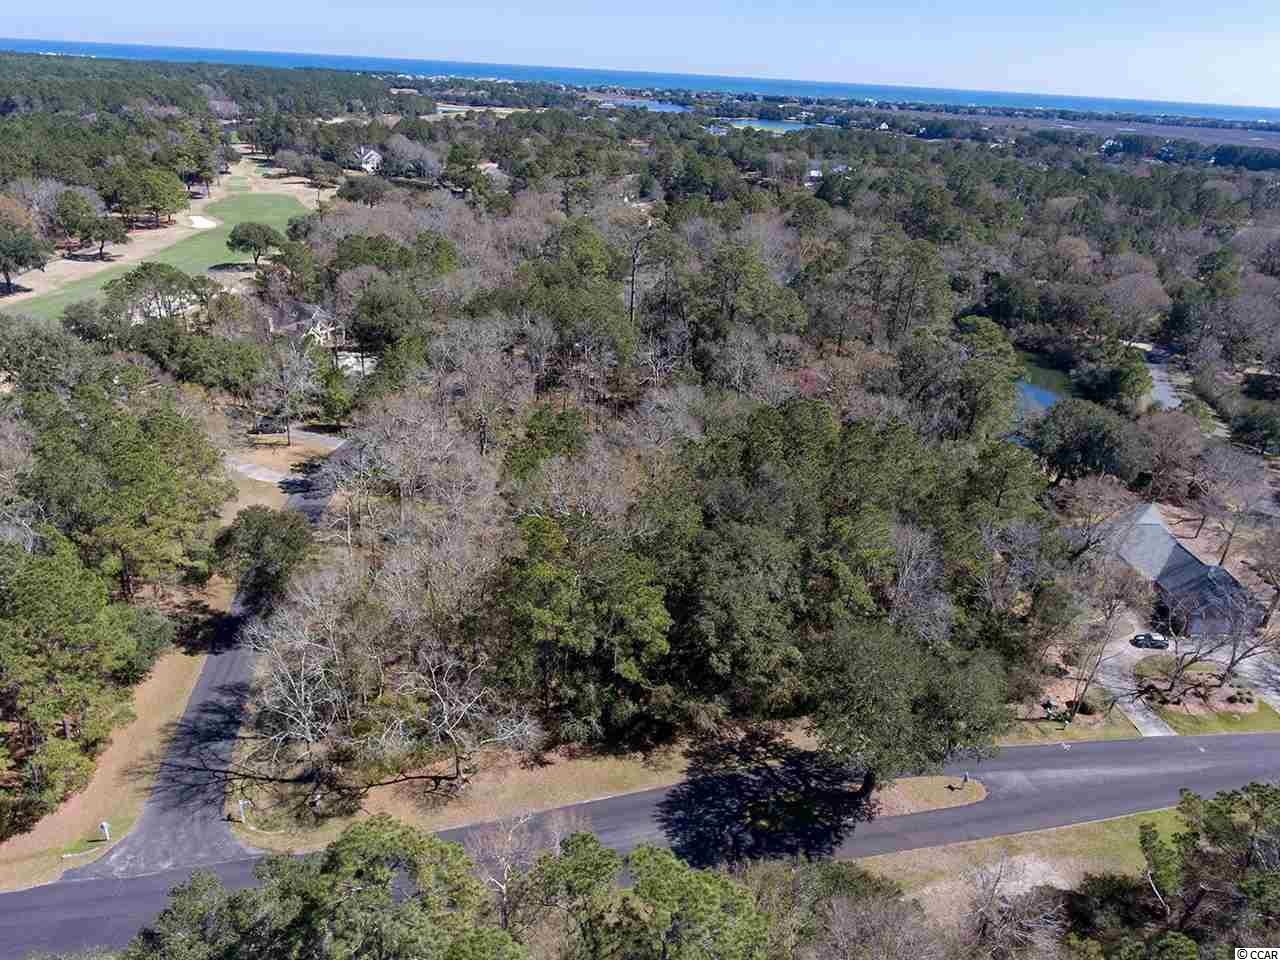 Golf Community - This is a must see DeBordieu Colony property and priced to sell quickly! Located on a quiet cul de sac within the DeBordieu Colony golf community, this homesite features beautiful mature oak trees, a large building envelope and lake frontage. This property is not in a flood zone and will offer a backyard southern exposure perfect for a pool or garden.   DeBordieu Colony is a private gated coastal community. Property owners and club members enjoy a private golf course, tennis club, oceanfront beachfront club with fine and casual dining,  a beautiful beach, and a community boat ramp with convenient access to the pristine North Inlet estuary. DeBordieu Colony is located between Pawleys Island and Georgetown, South Carolina.